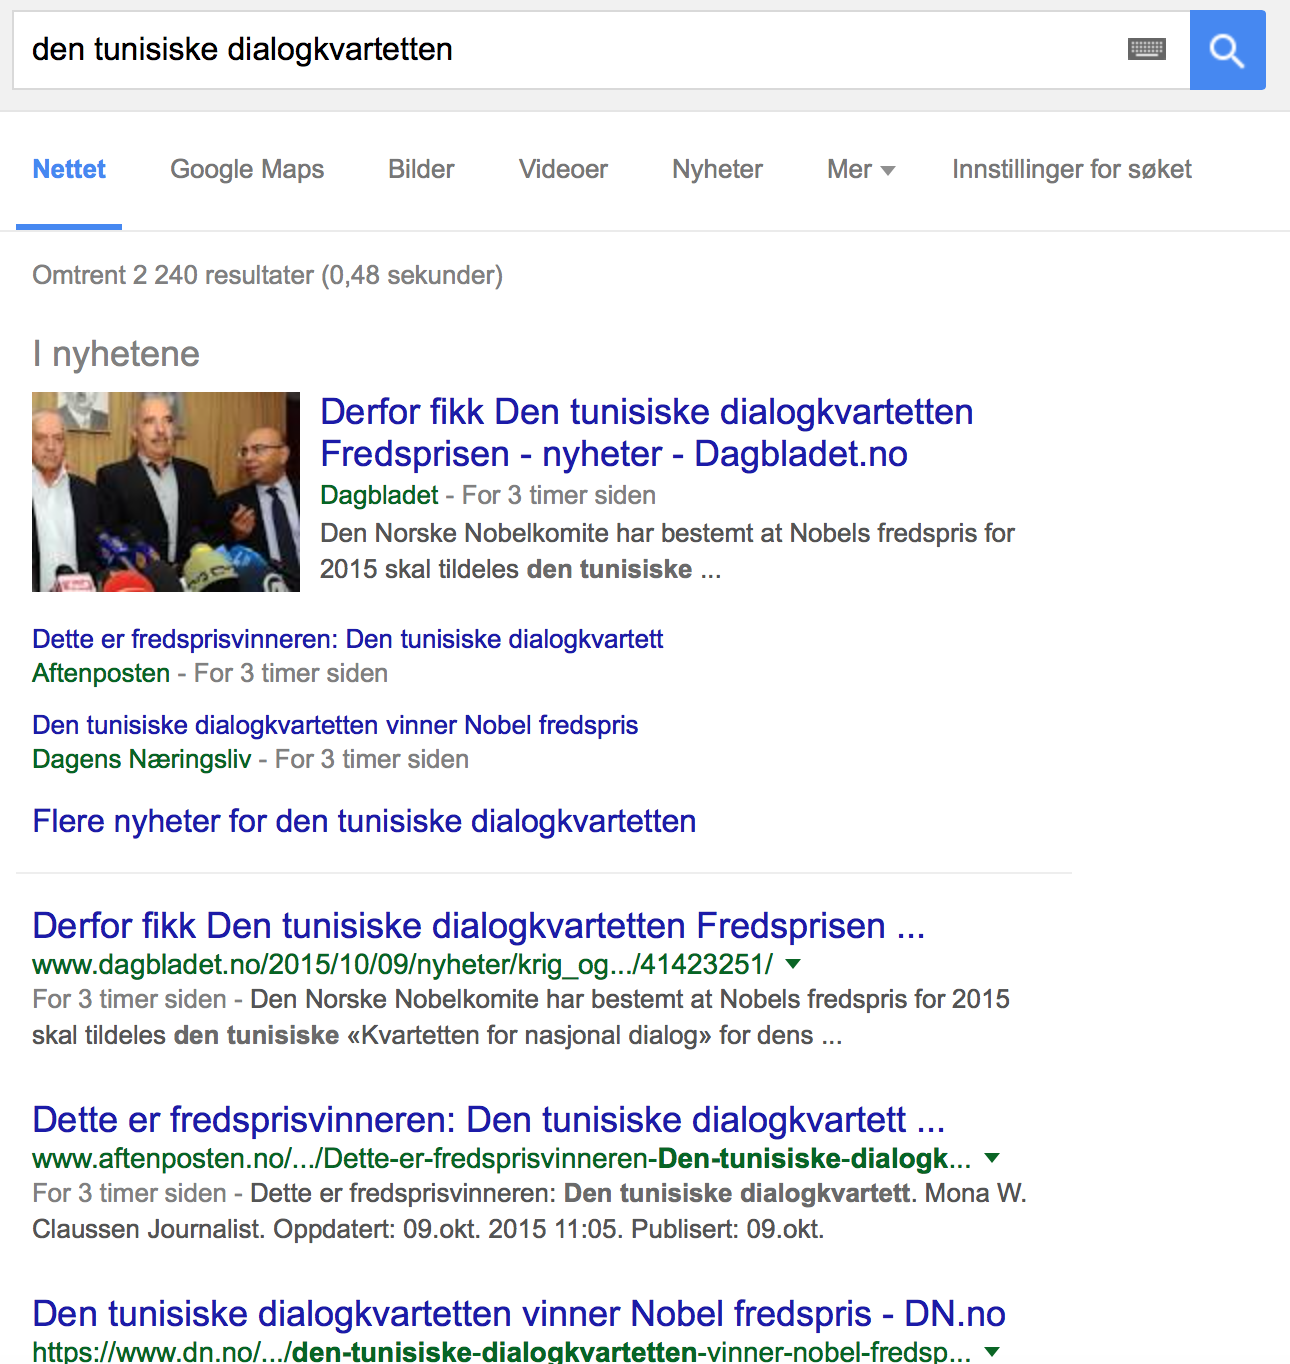 "Google results for ""Den tunisiske dialogkvartteten"" at 13:00 CET, 2240 results"